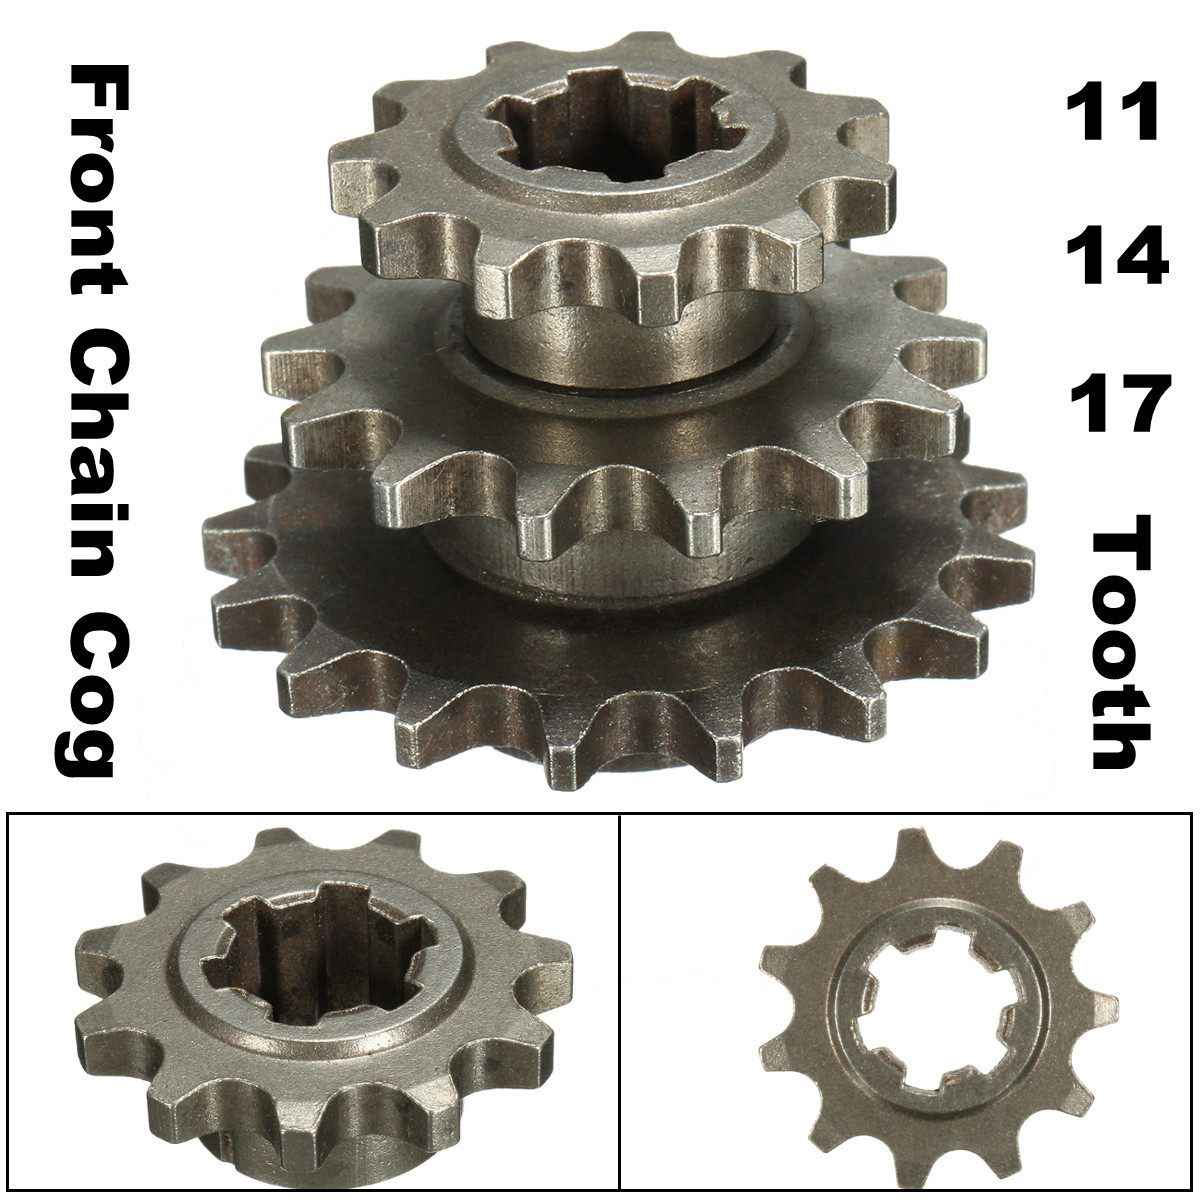 T8F 8mm 11/14/17 Tooth Front Pinion Sprocket Chain Cog for 47cc 49cc Mini Moto Dirt Bike